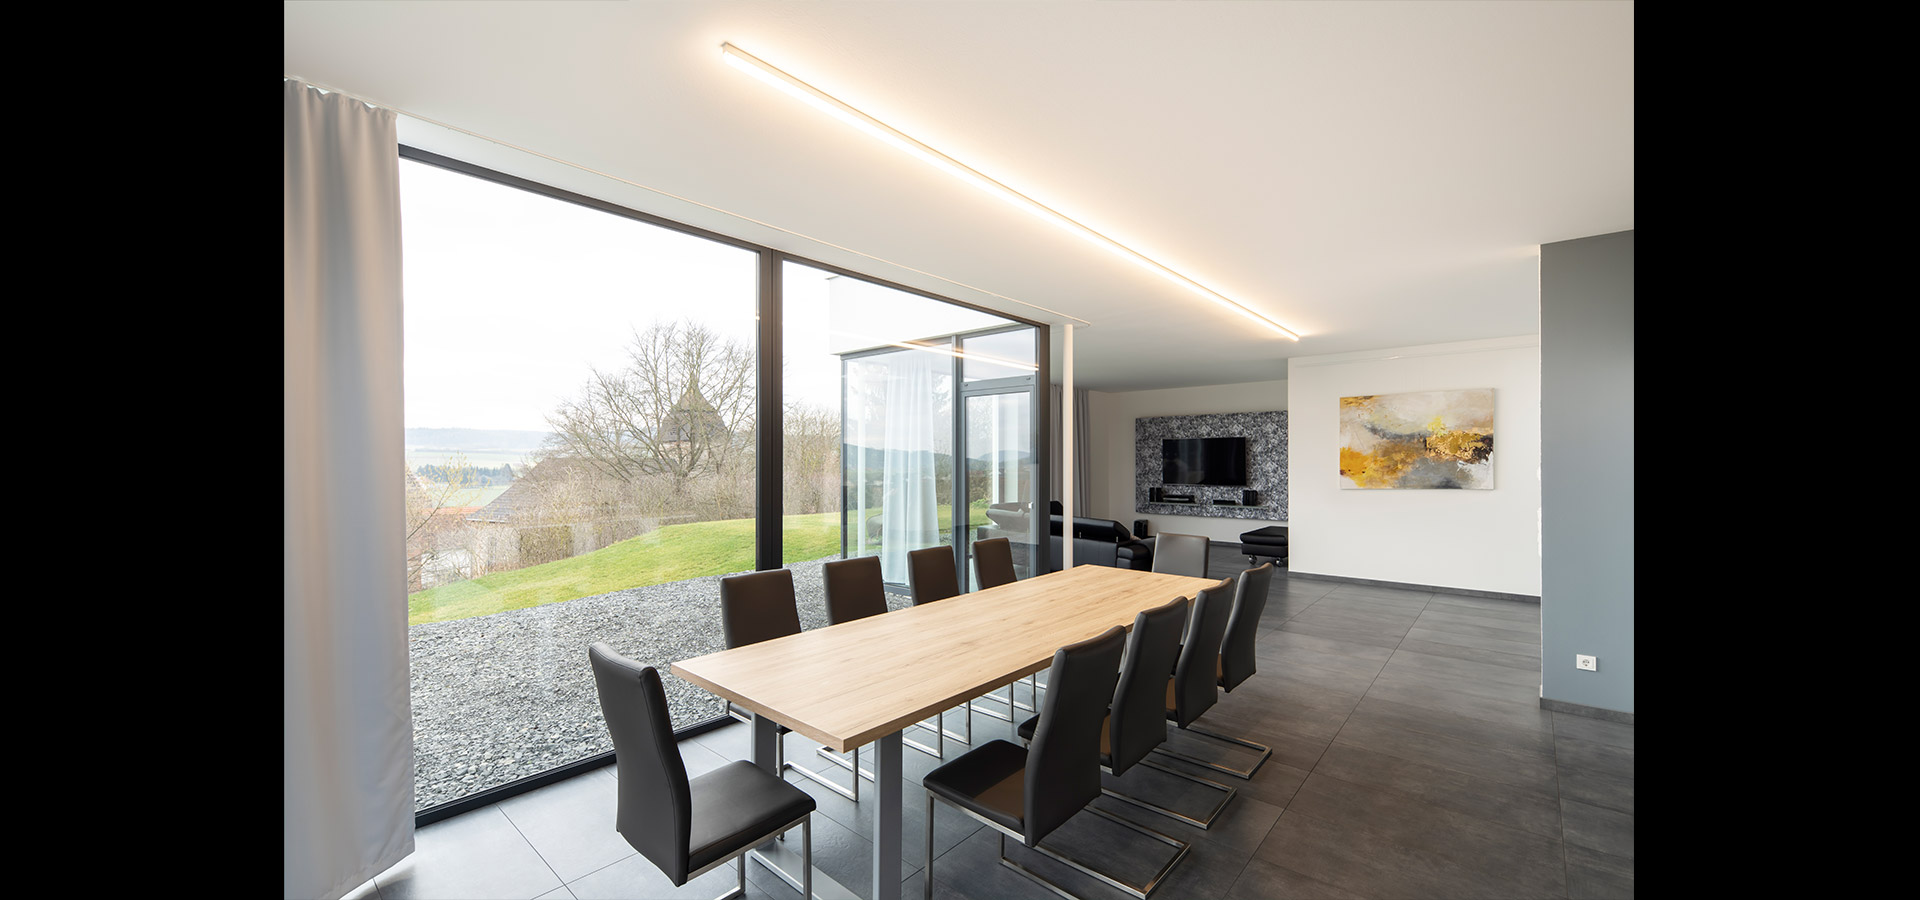 Led Leuchten Wohnzimmer Lines Of Light For Living Areas ✓ Luxsystem Luminaires